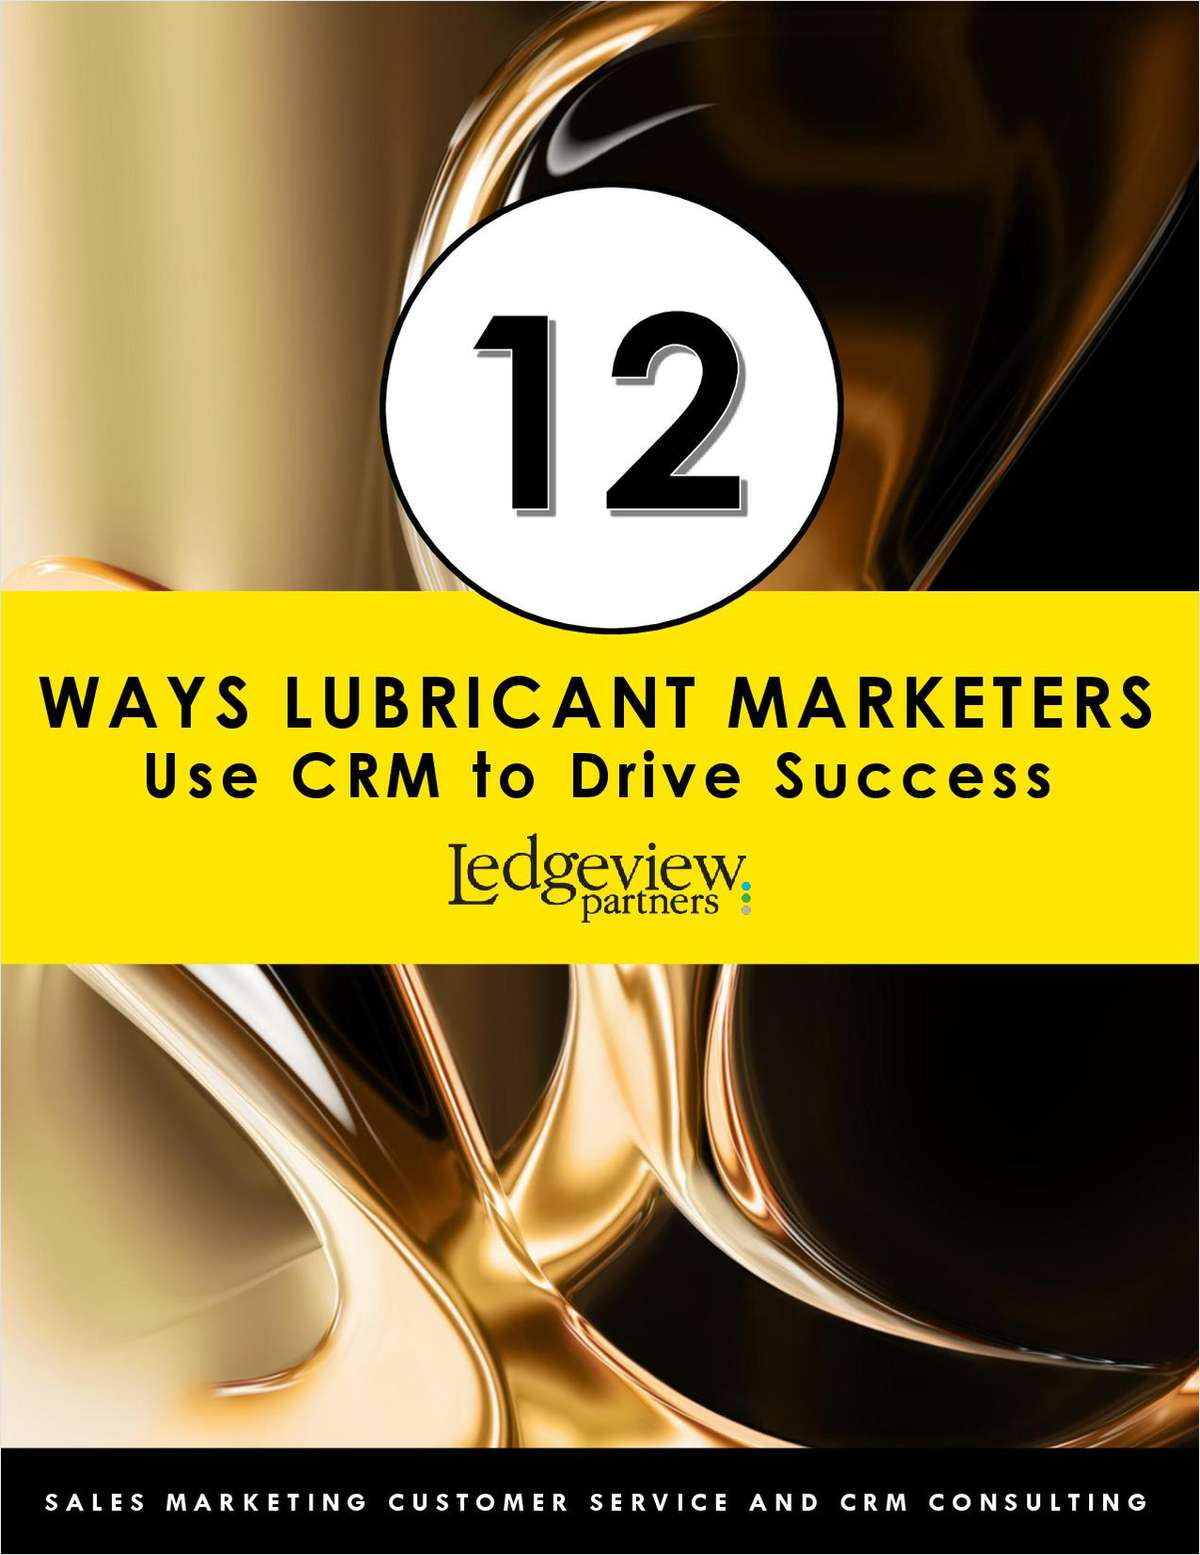 12 Ways Lubricant Marketers Use CRM to Drive Success